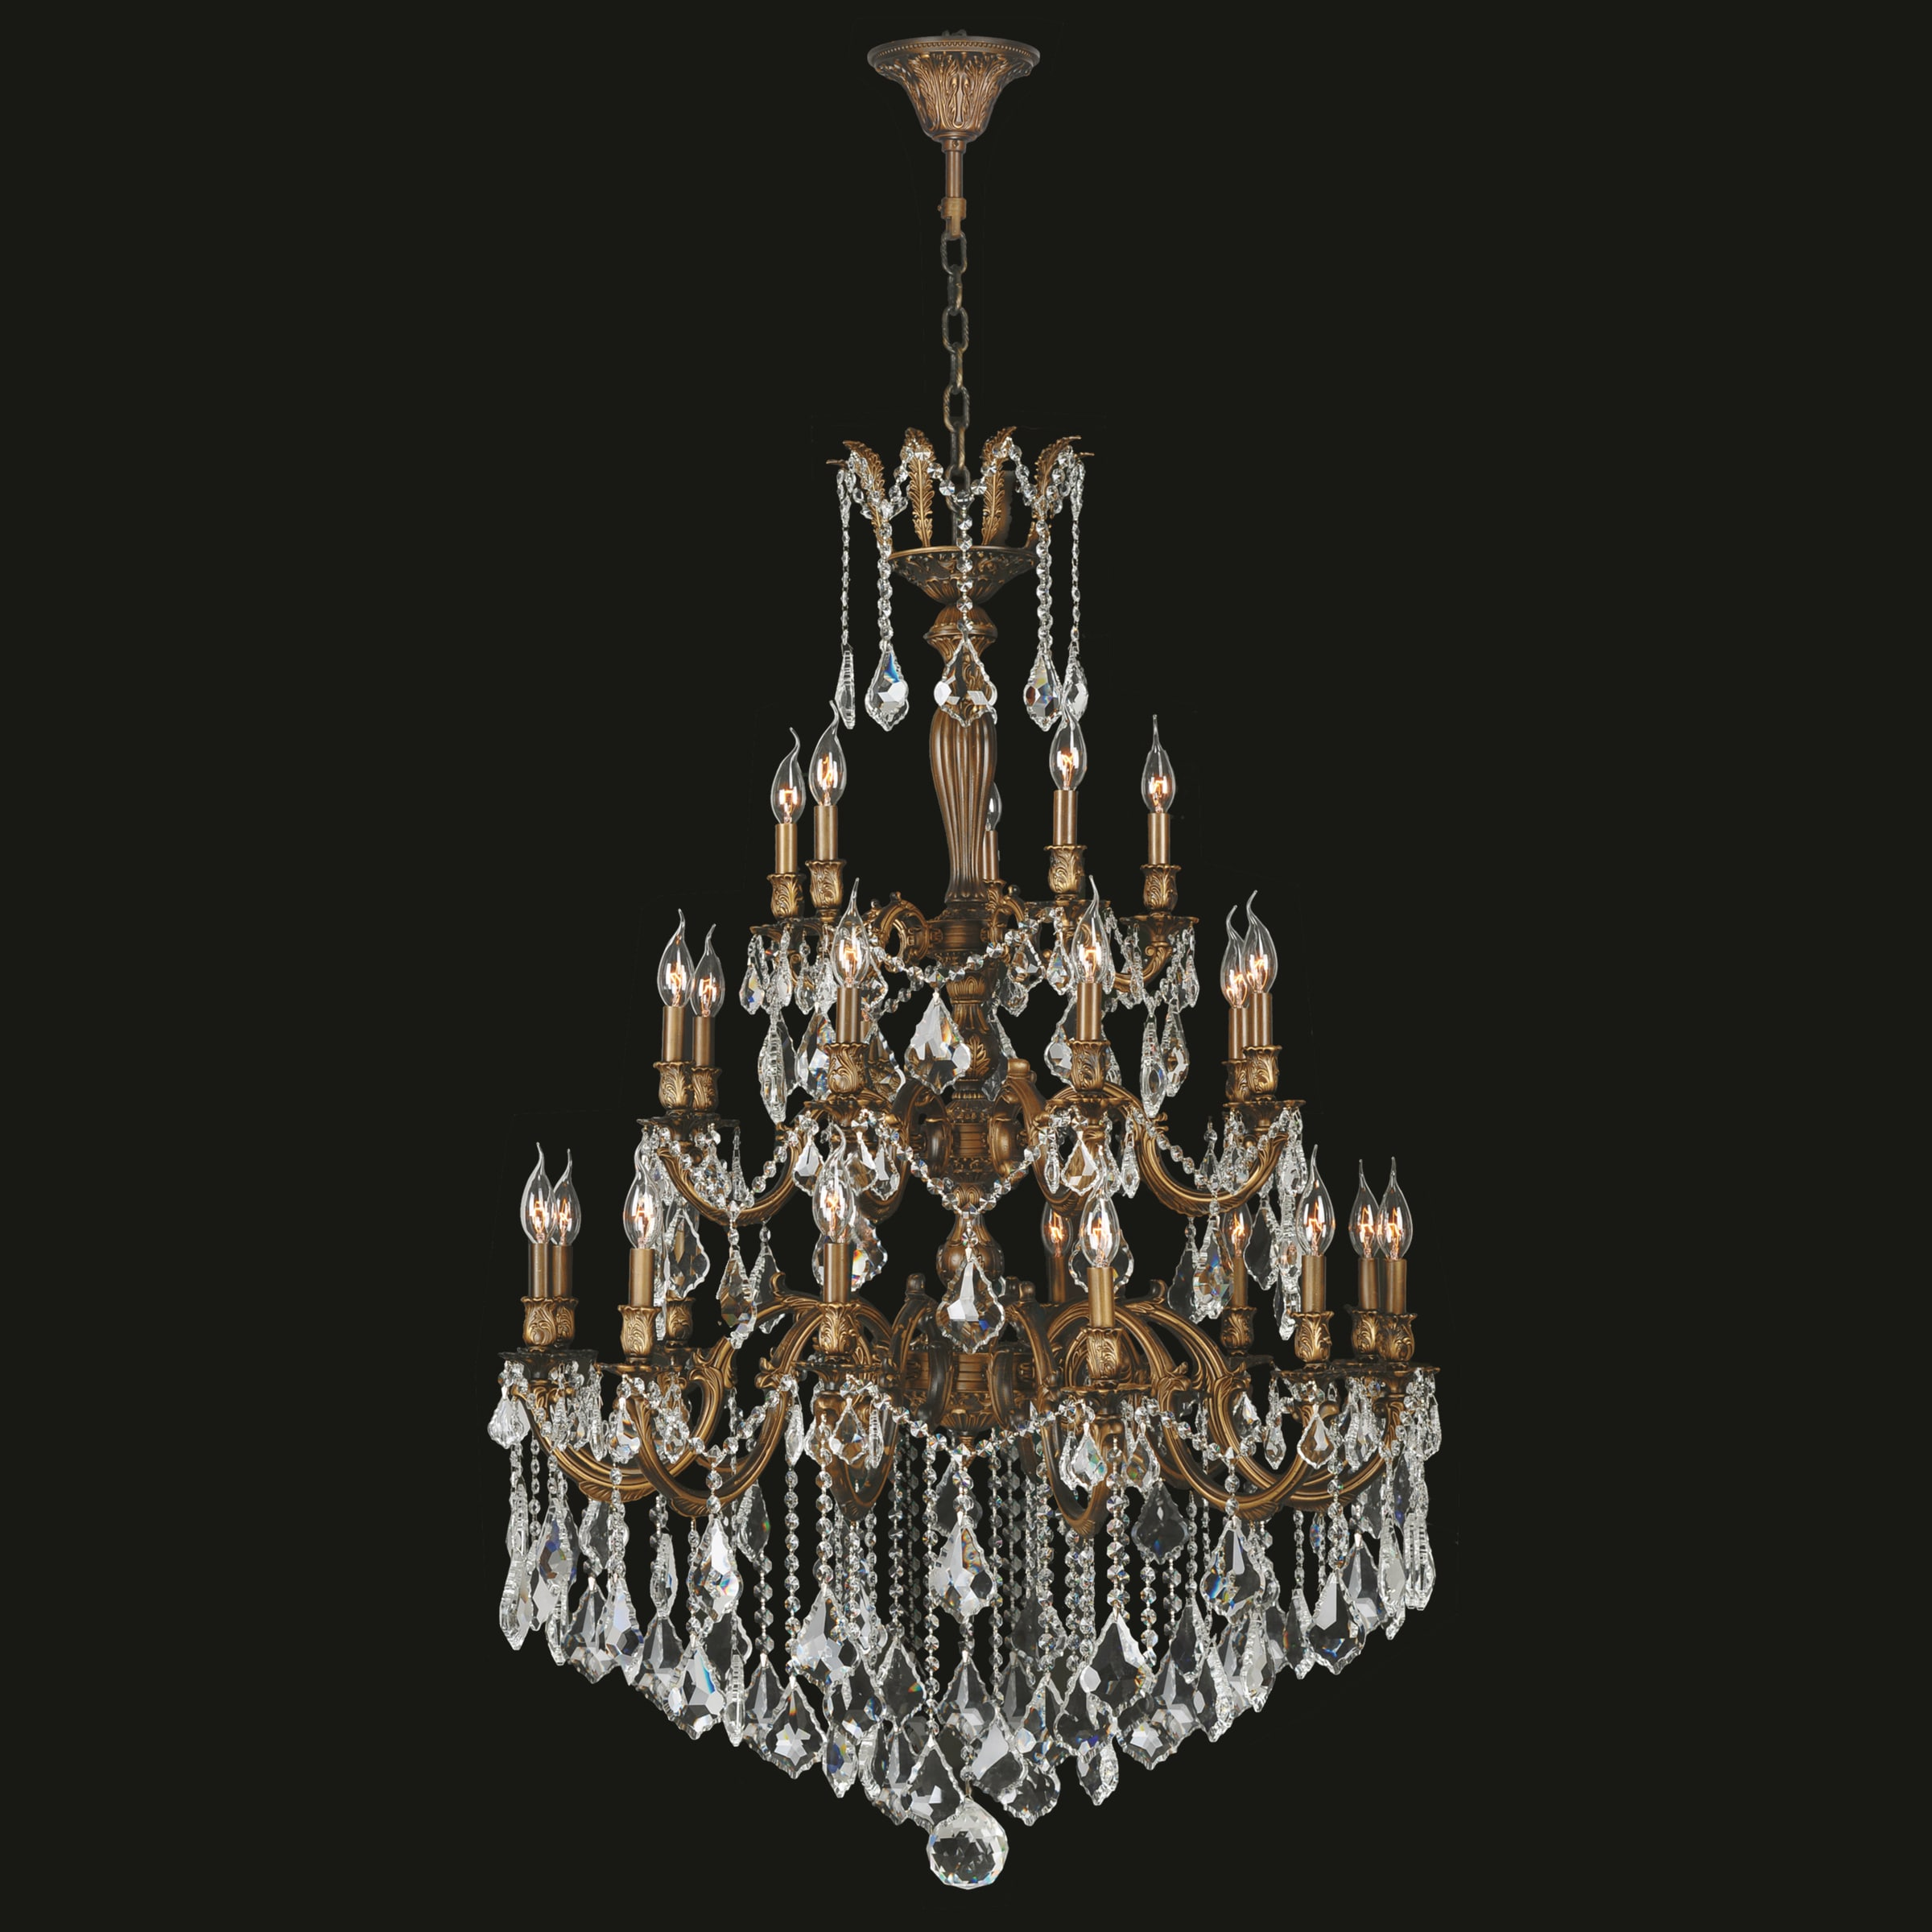 French imperial collection 25 light french gold and clear crystal french imperial collection 25 light french gold and clear crystal traditional chandelier large three 3 tier 36 x 50 free shipping today overstock arubaitofo Choice Image